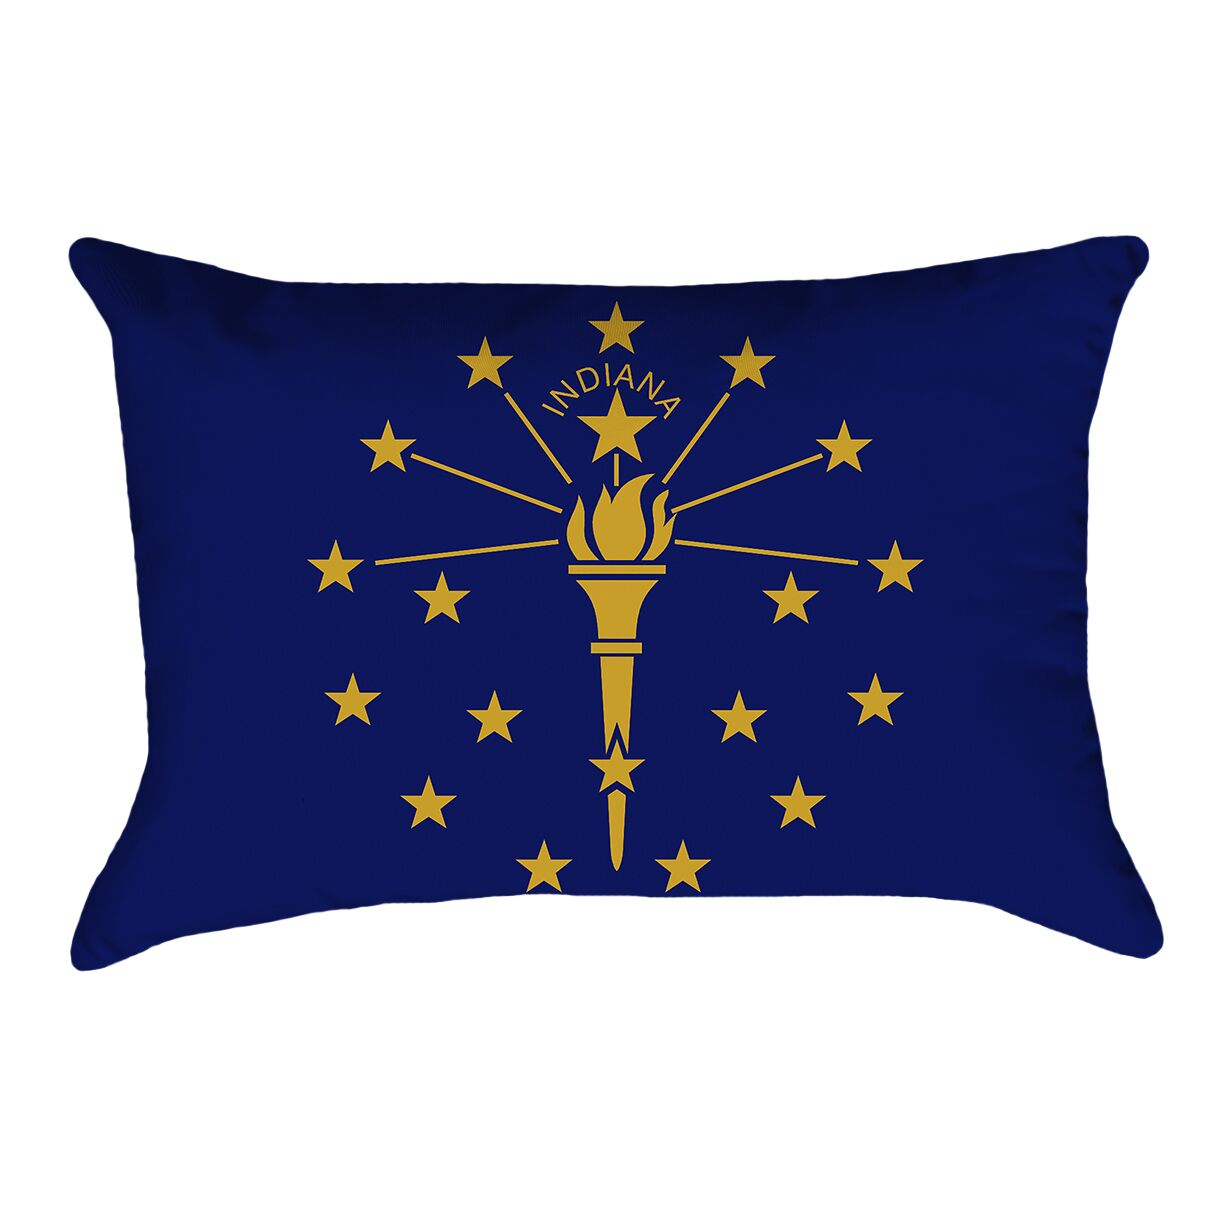 Centers Indiana Flag Pillow Material/Product Type: Poly Twill Double Sided Print/Lumbar Pillow